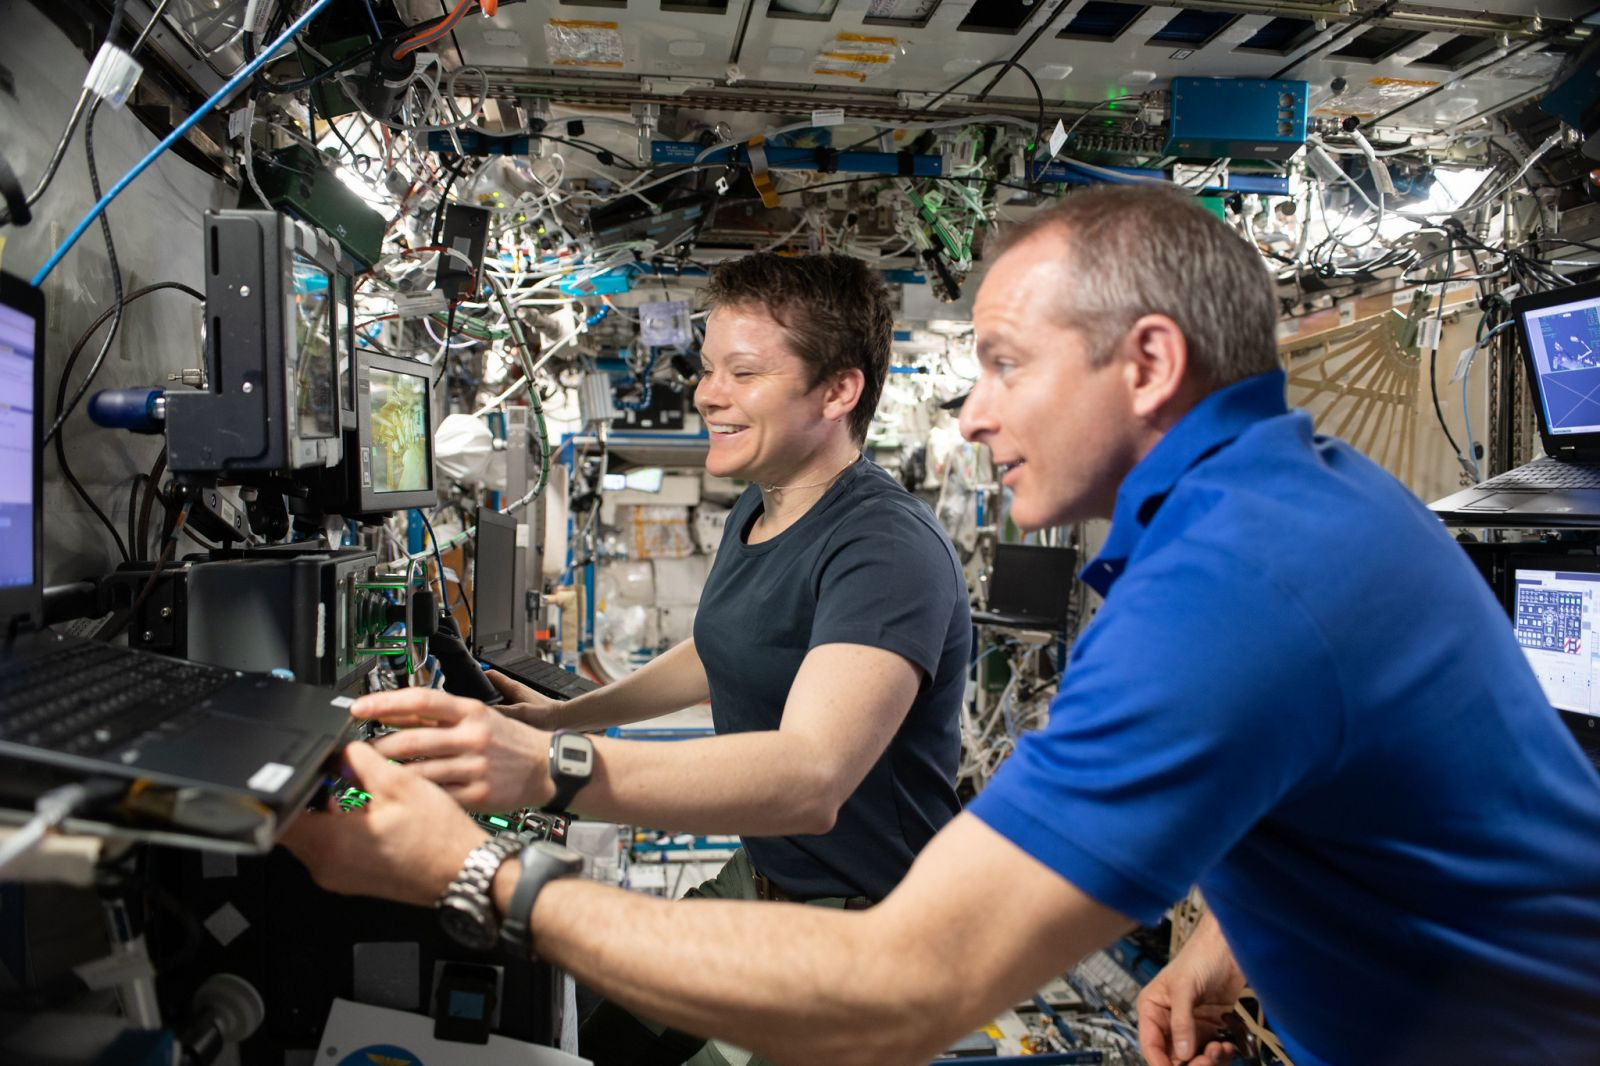 Expedition 59 astronauts Anne McClain and David Saint-Jacques of NASA and the Canadian Space Agency, respectively, practice Canadarm2 robotics maneuvers using the robotics workstation. in the Destiny module. Photo Credit: NASA